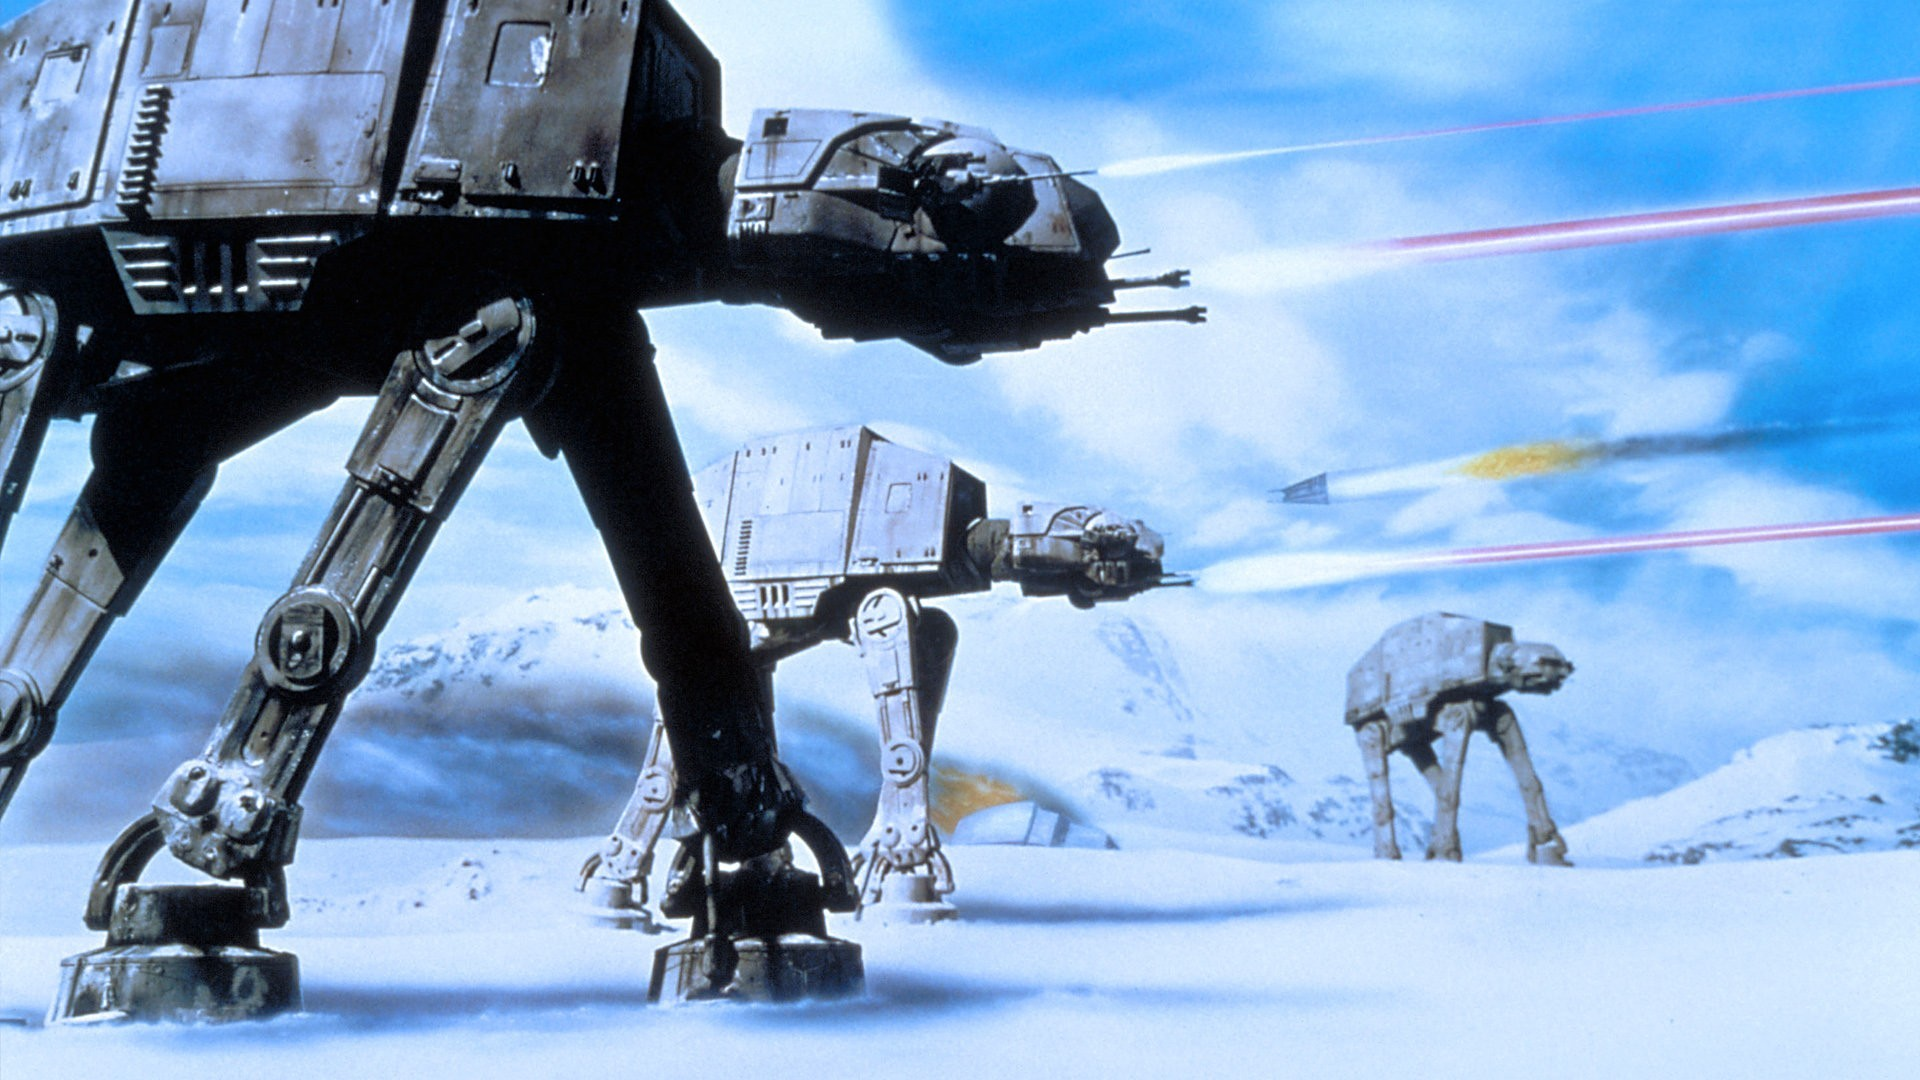 star wars battle of hoth wallpaper scifiempire. Black Bedroom Furniture Sets. Home Design Ideas